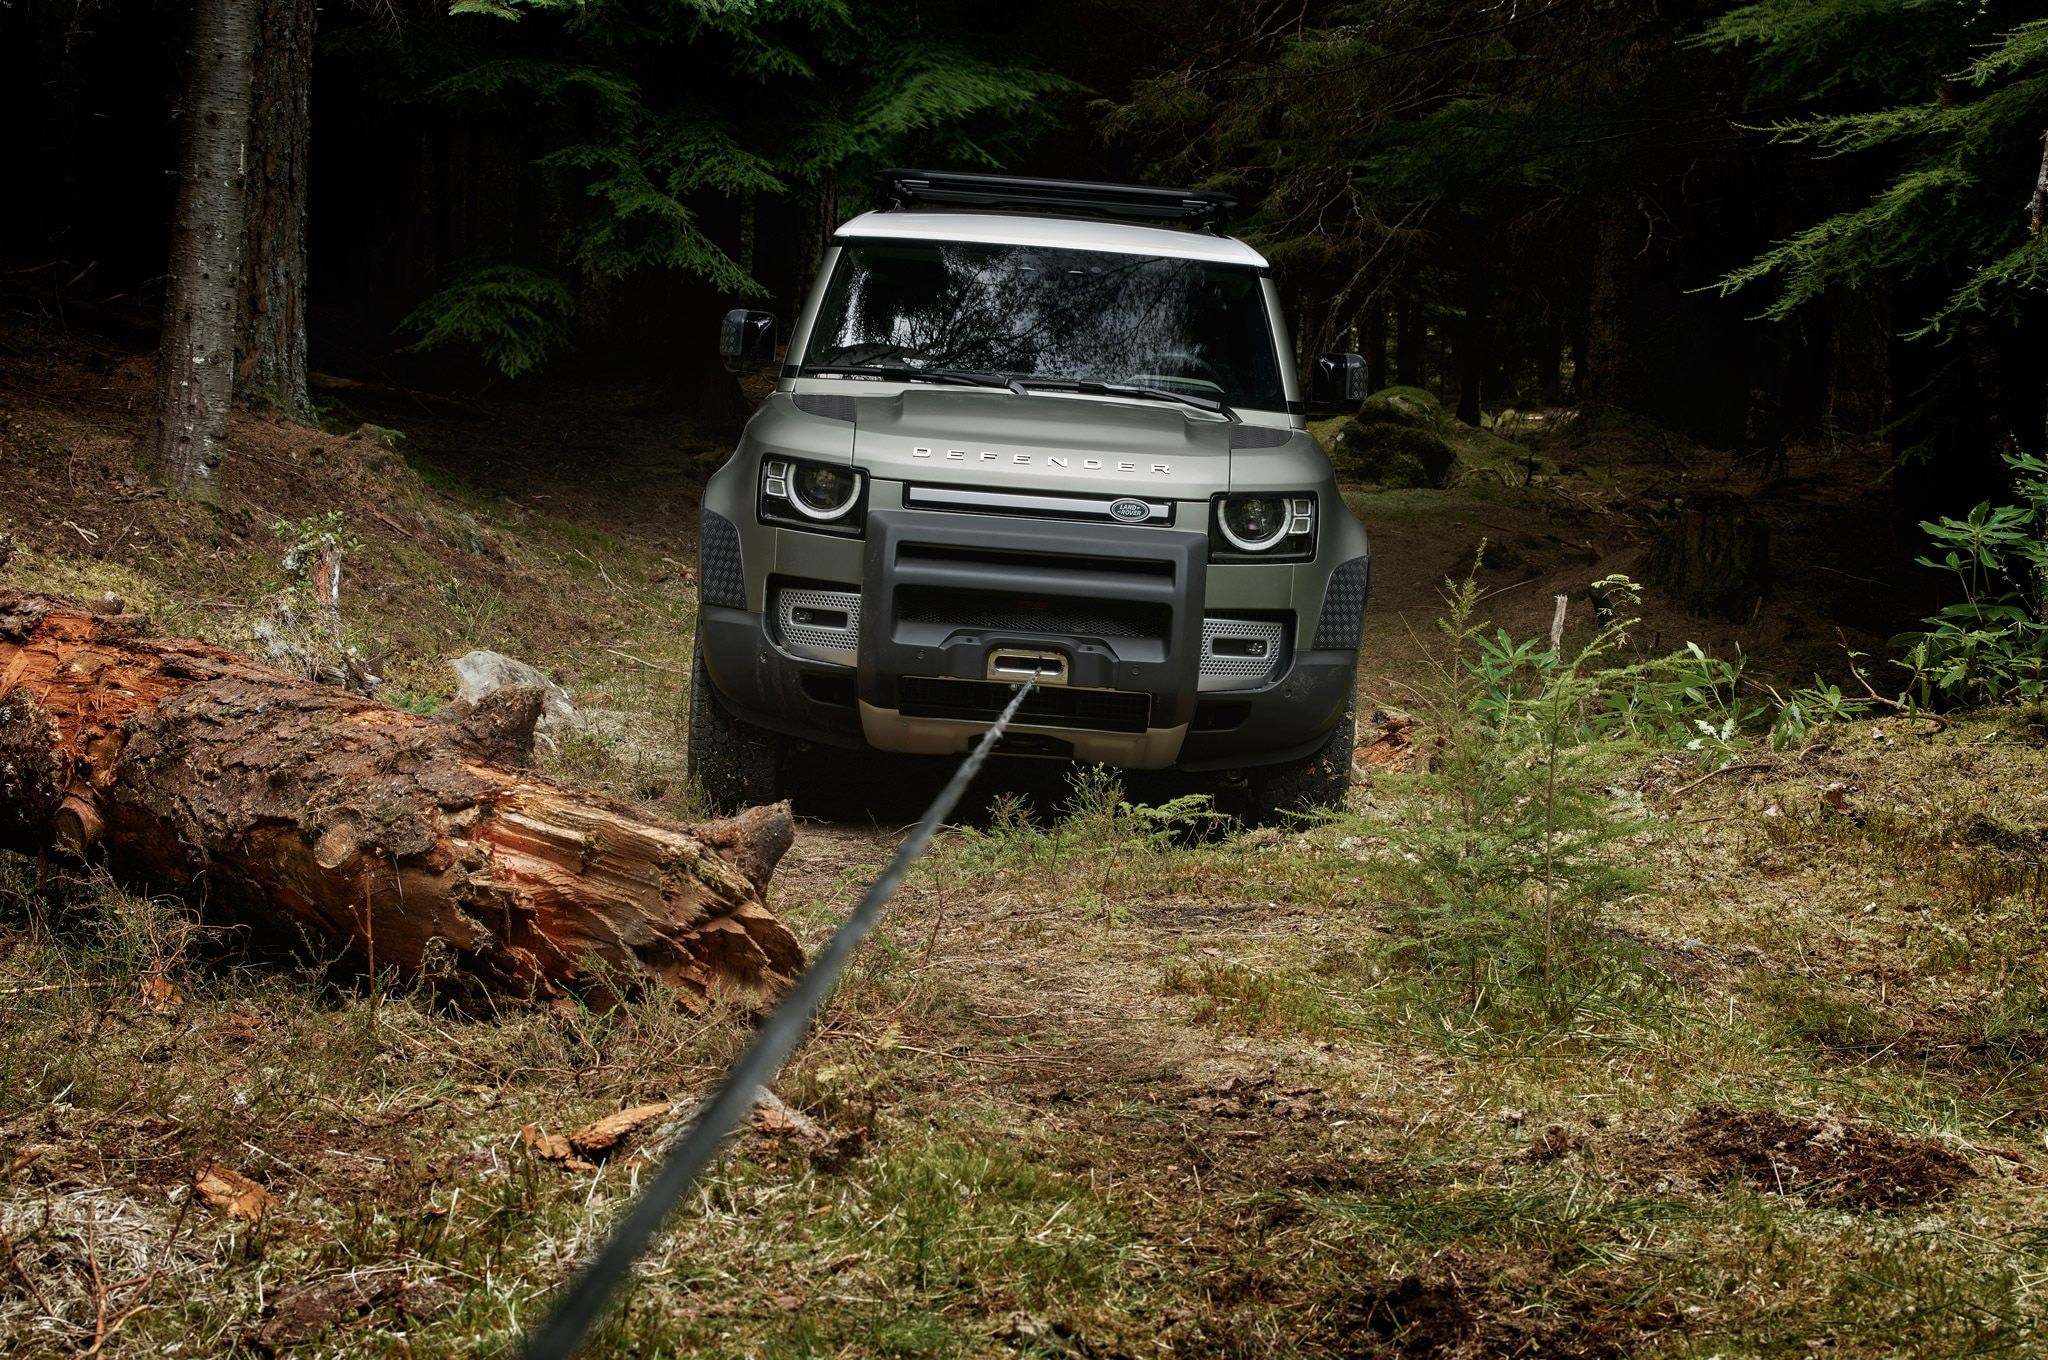 2020 land rover defender 90 off road winch